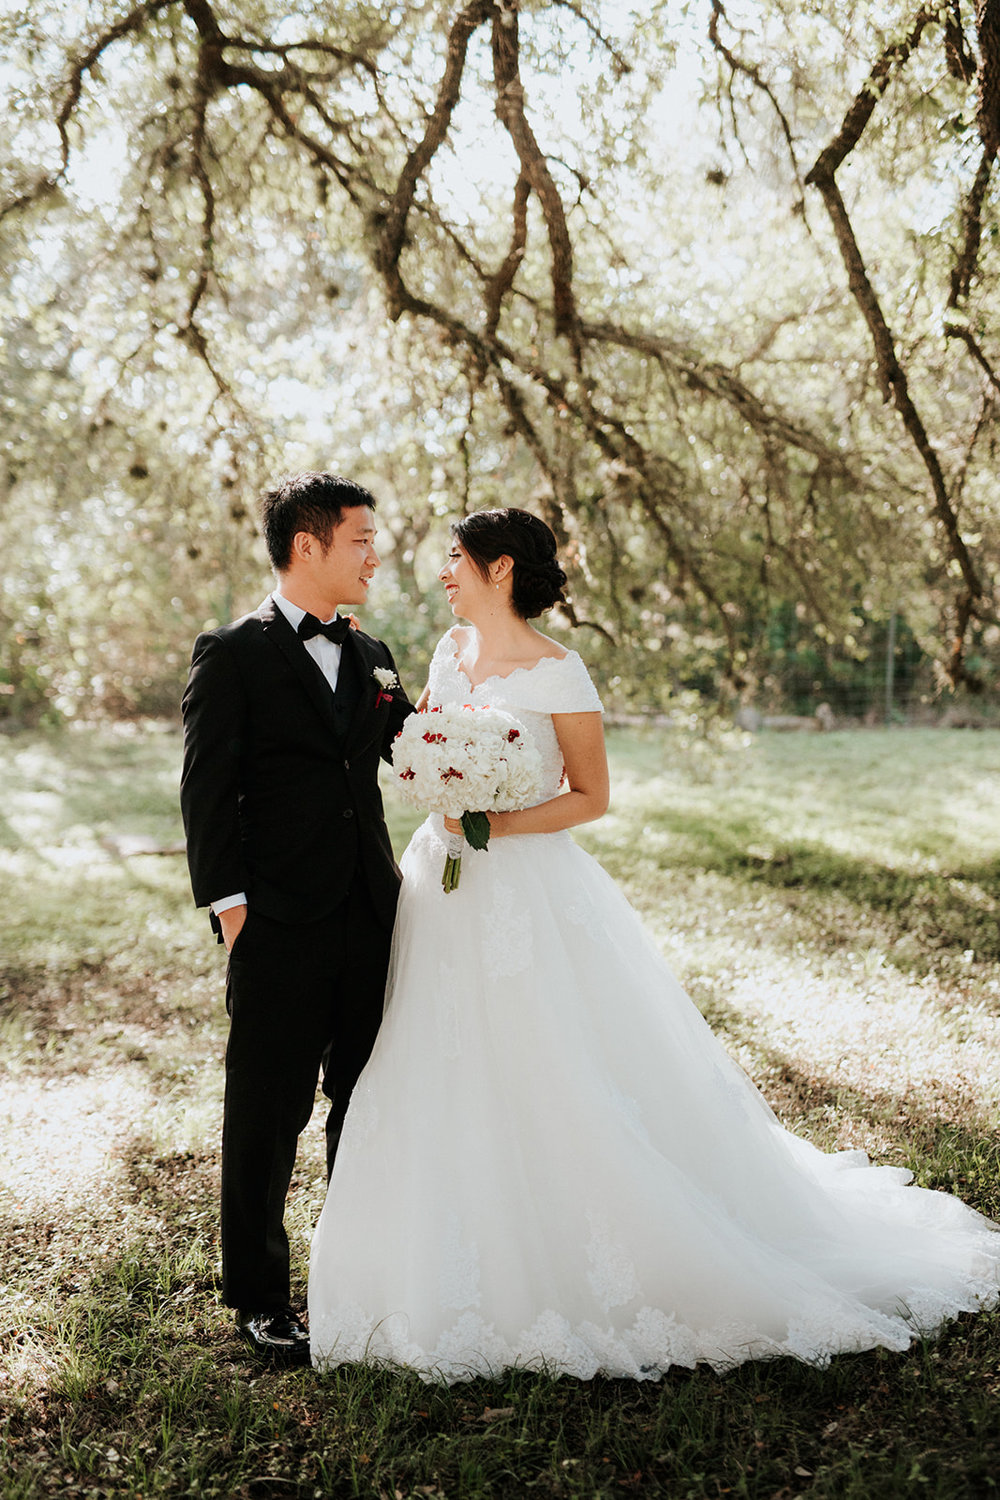 Krissy and Harry - Diana Ascarrunz Photography-155.jpg